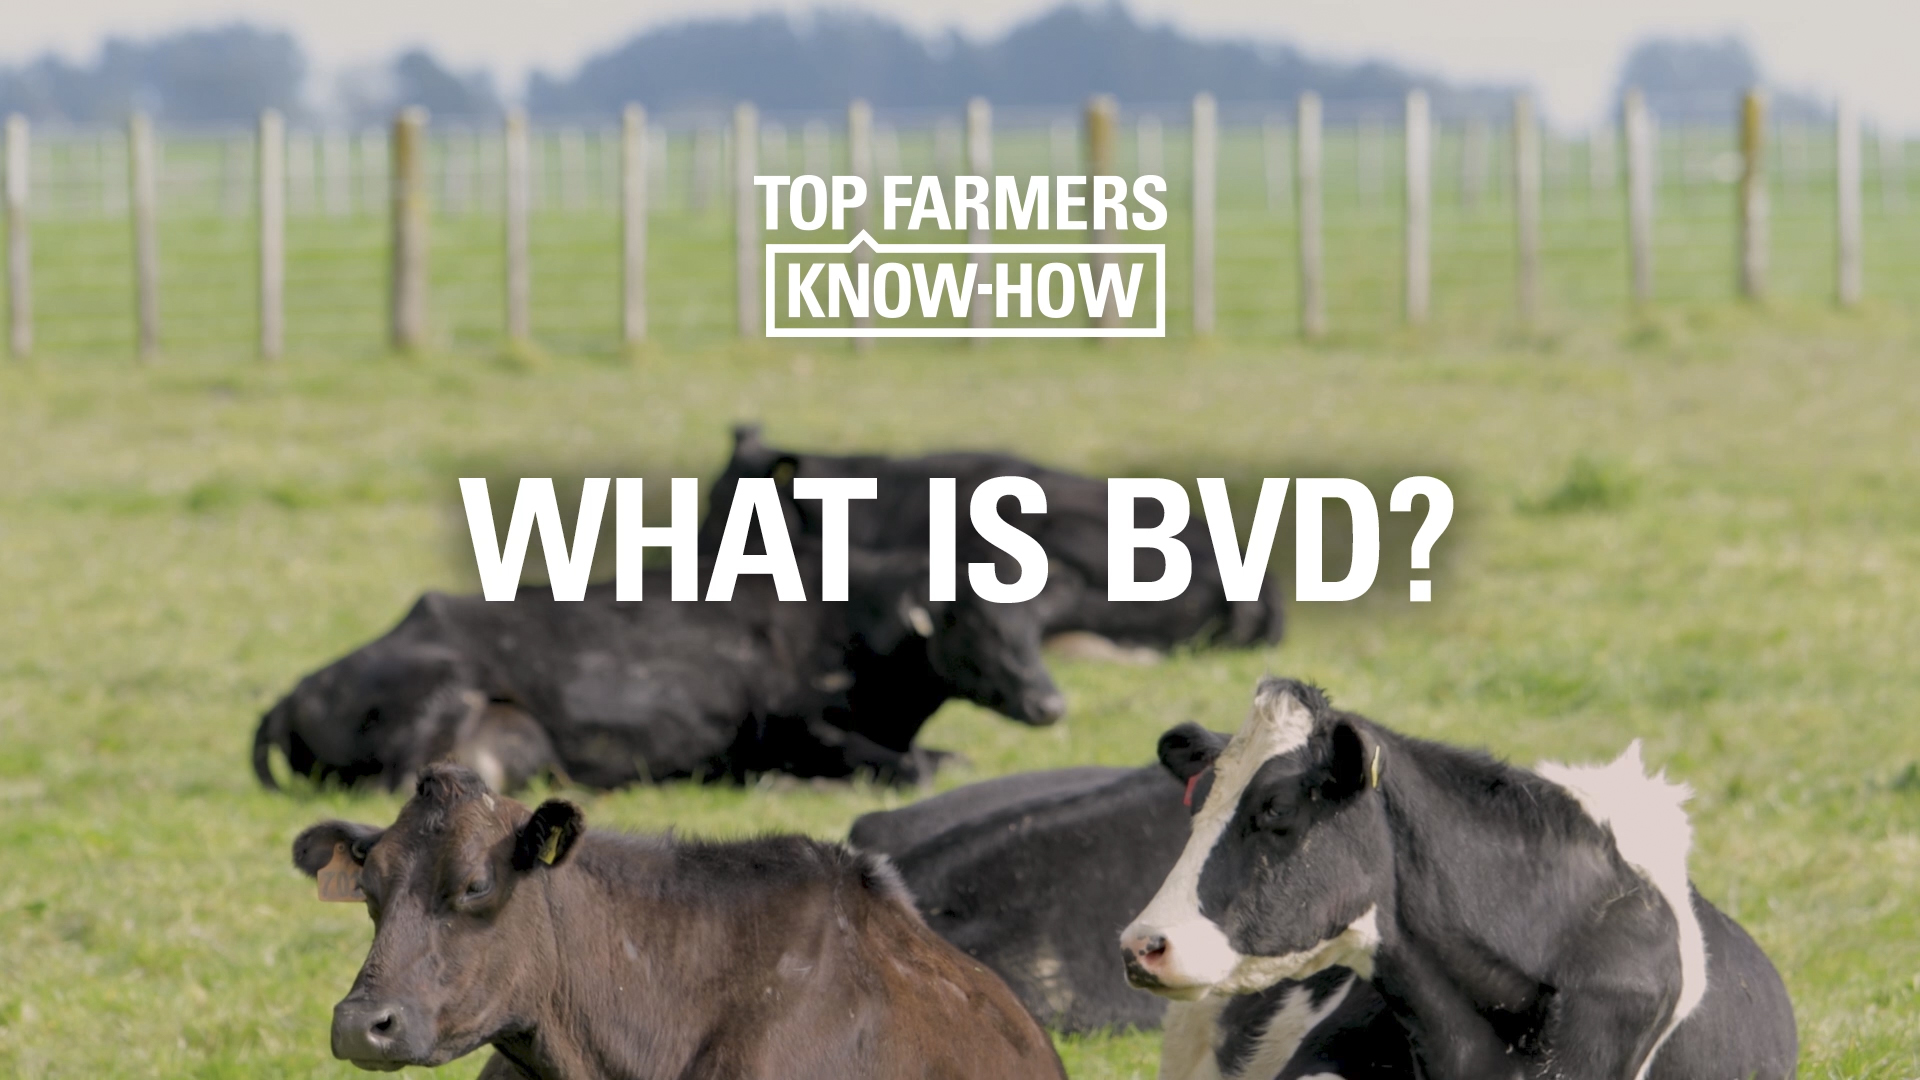 What is BVD